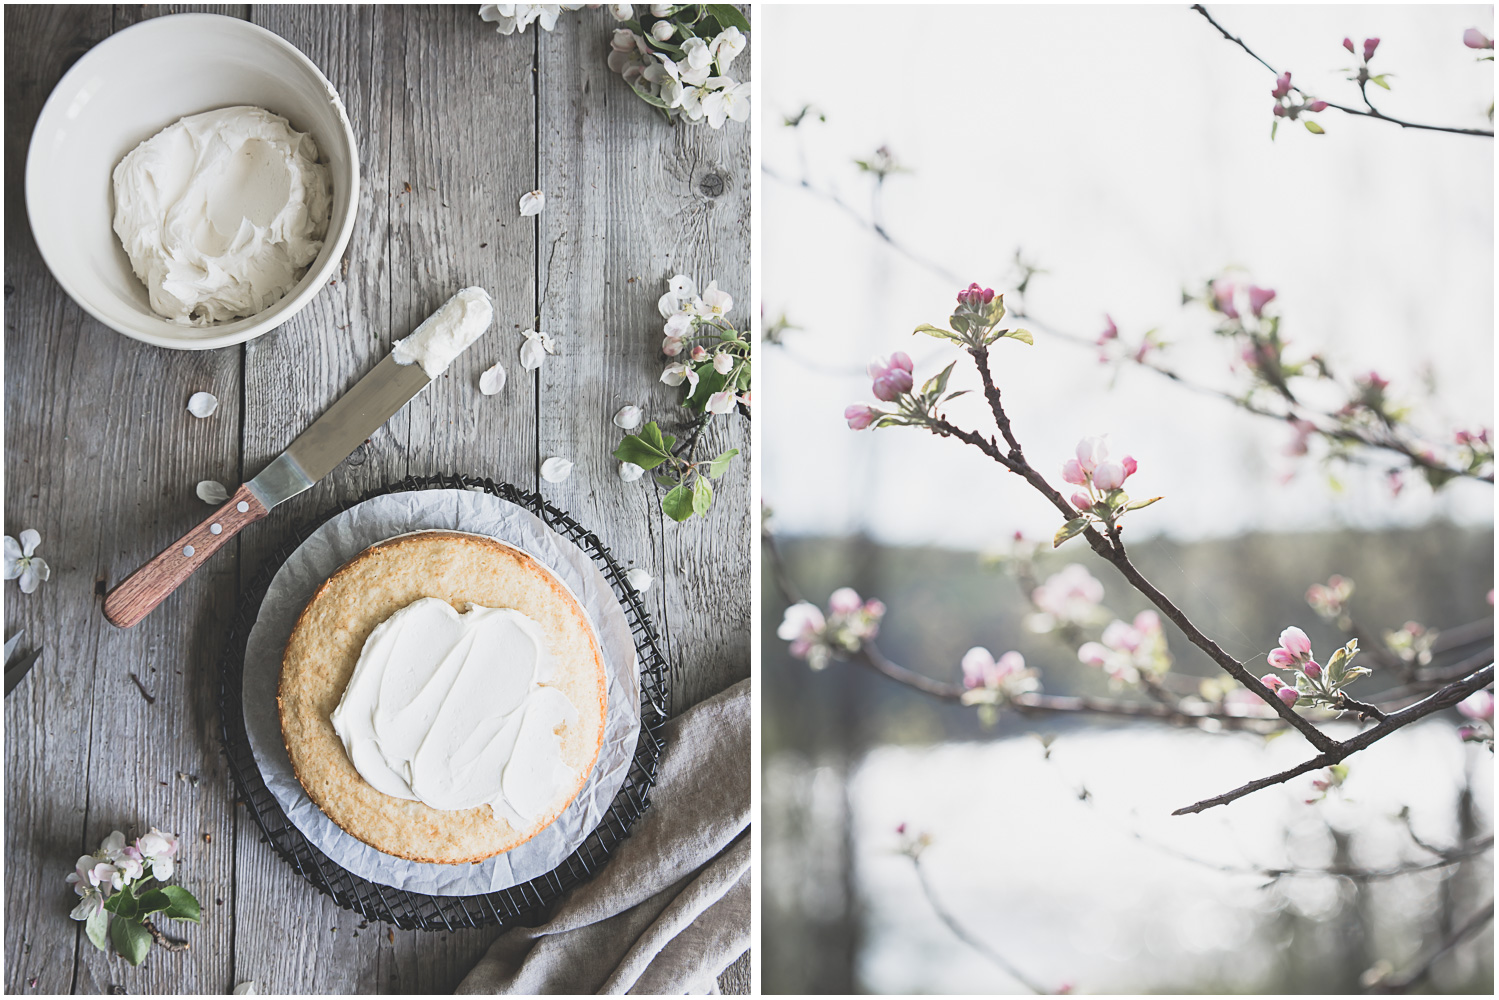 Classic white cake for a spring day